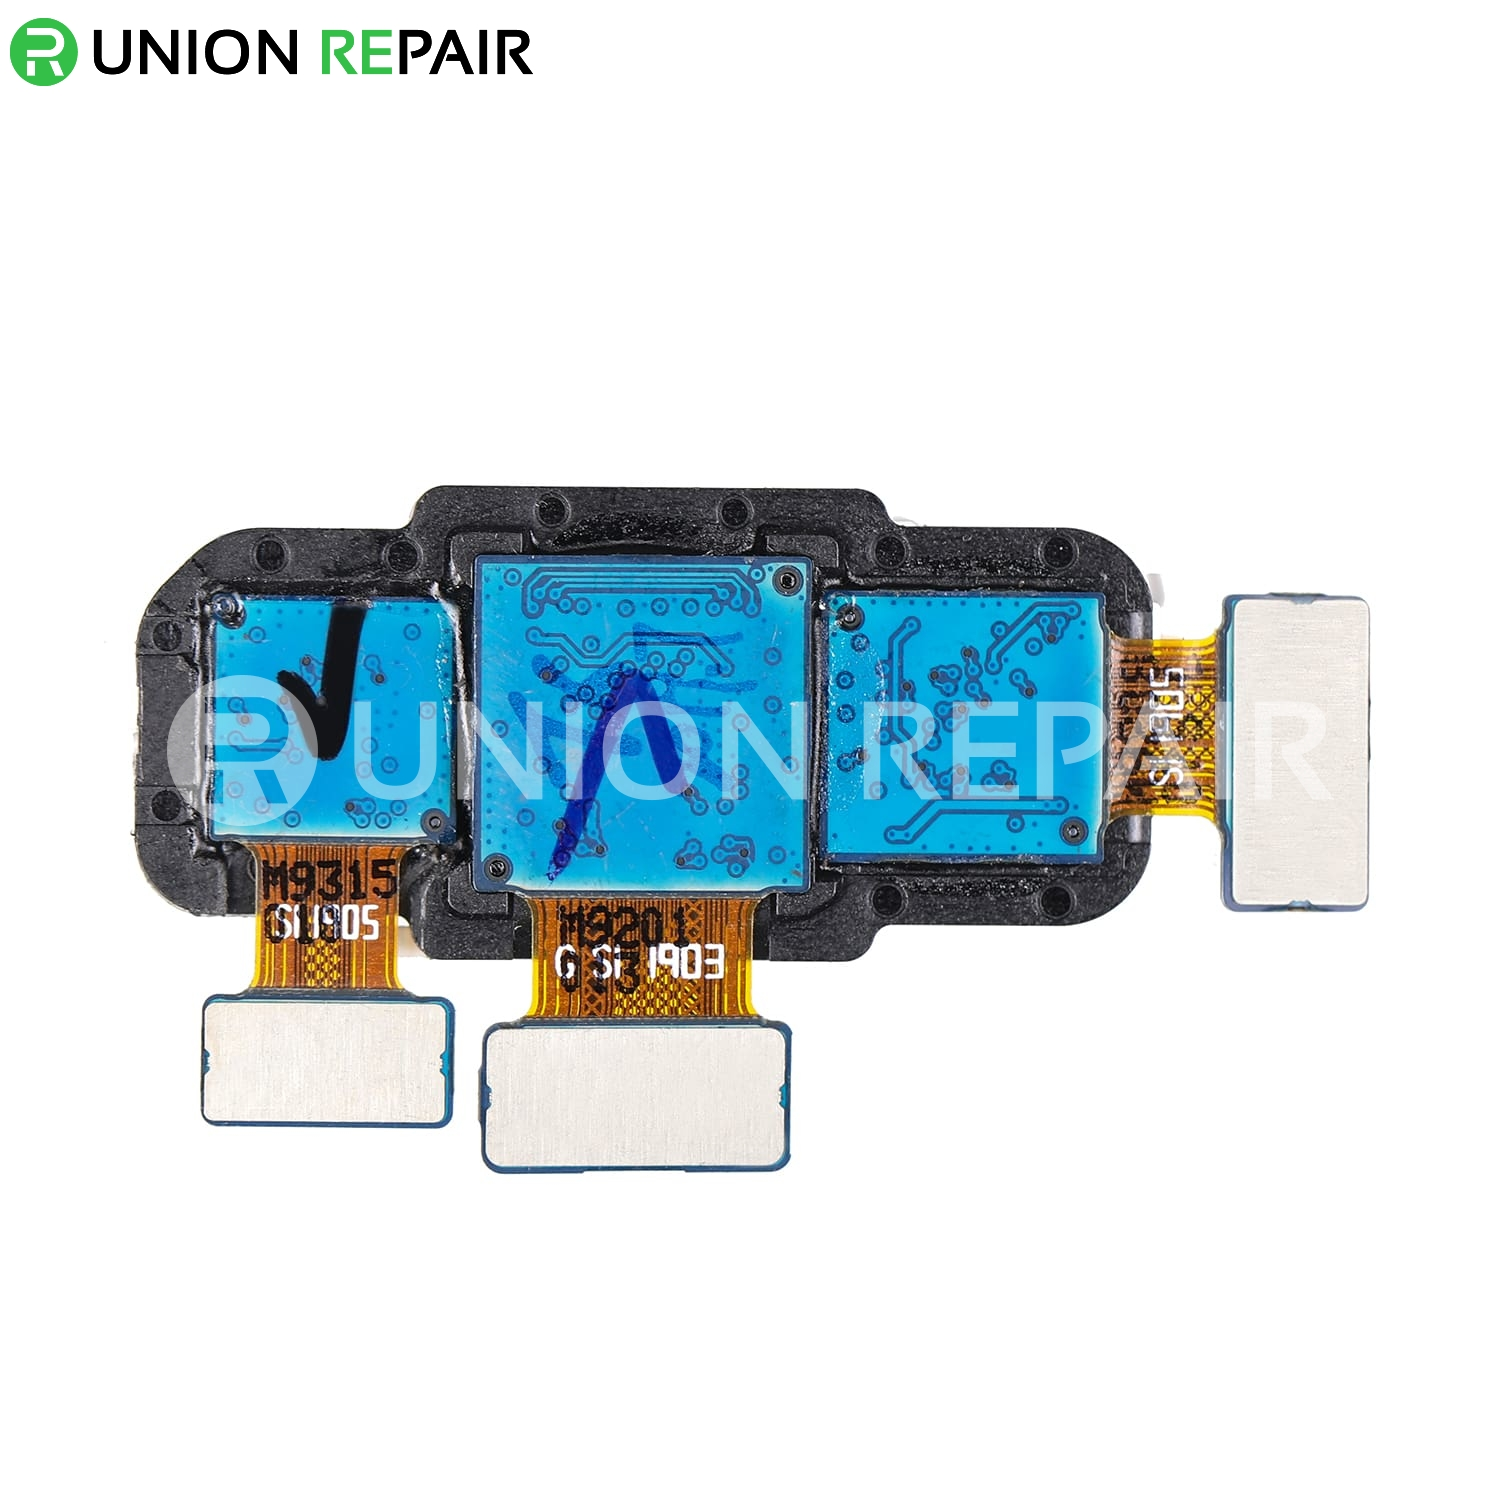 Replacement for Samsung Galaxy A7 (2018) SM-750 Rear Camera